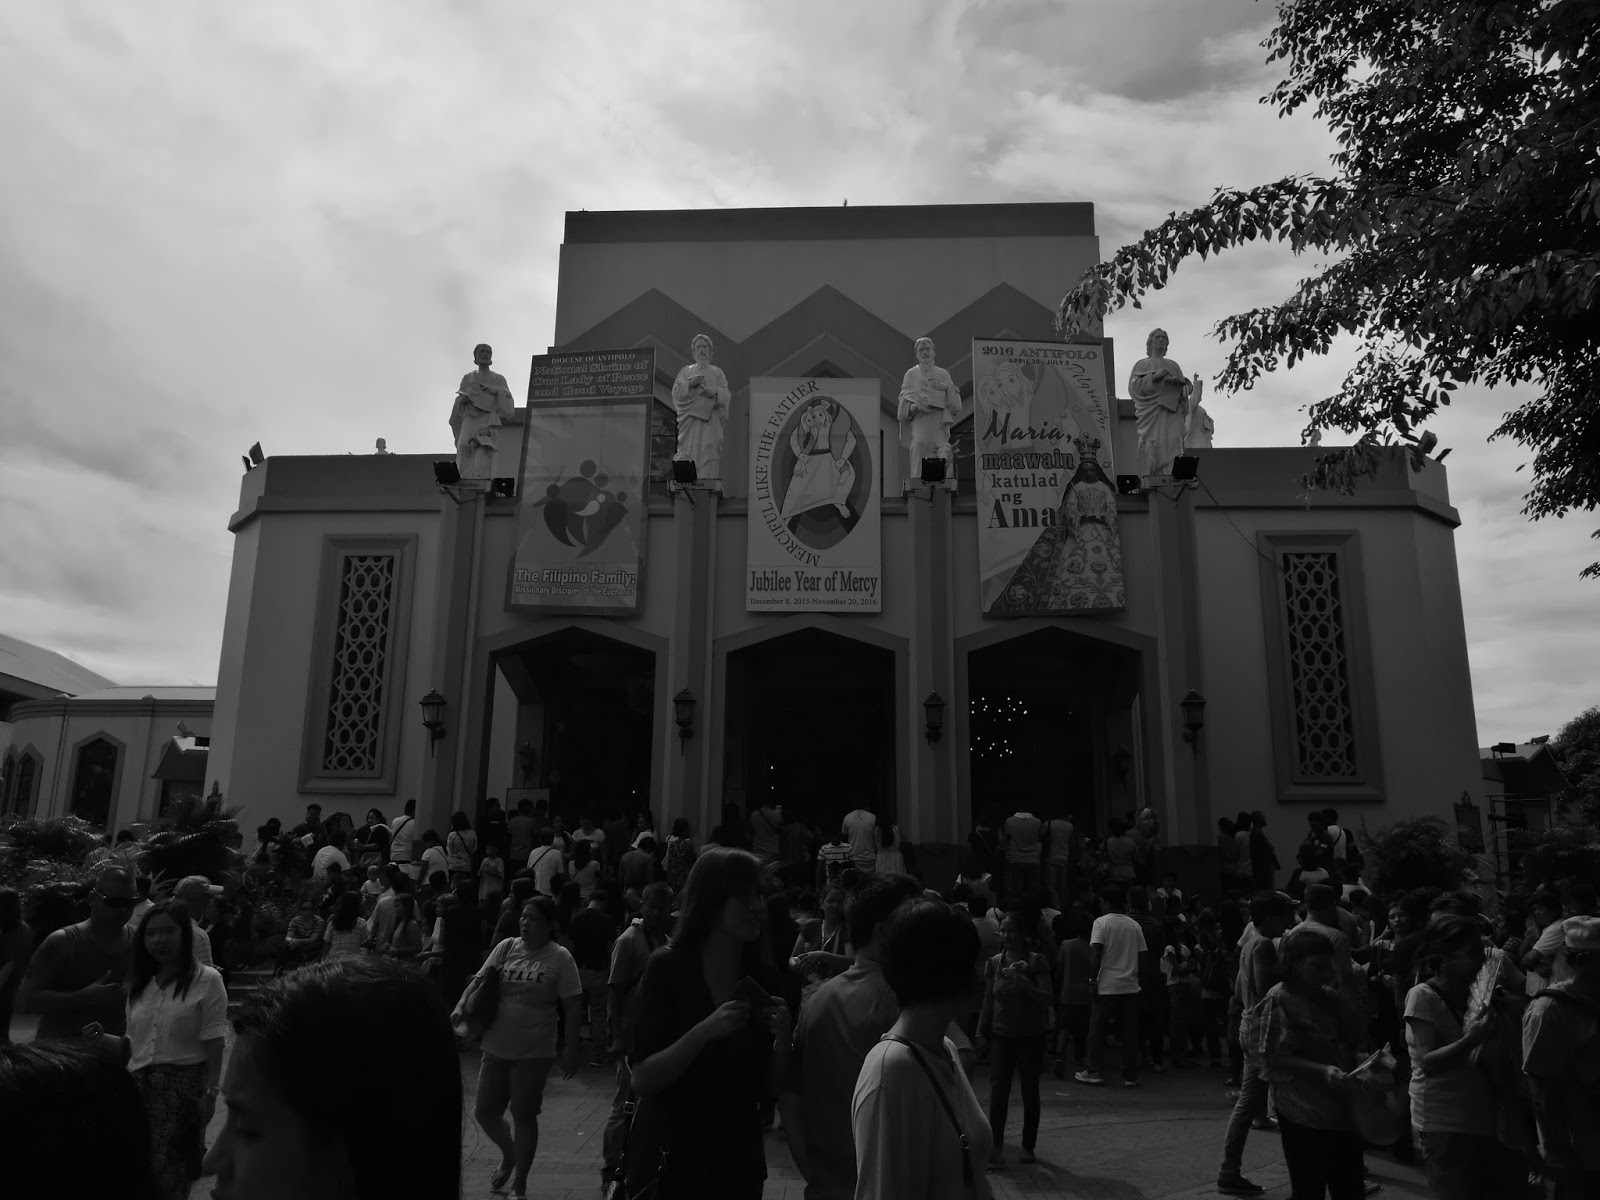 Huawei P9 Sample Camera Shot - Antipolo Cathedral in Monochrome